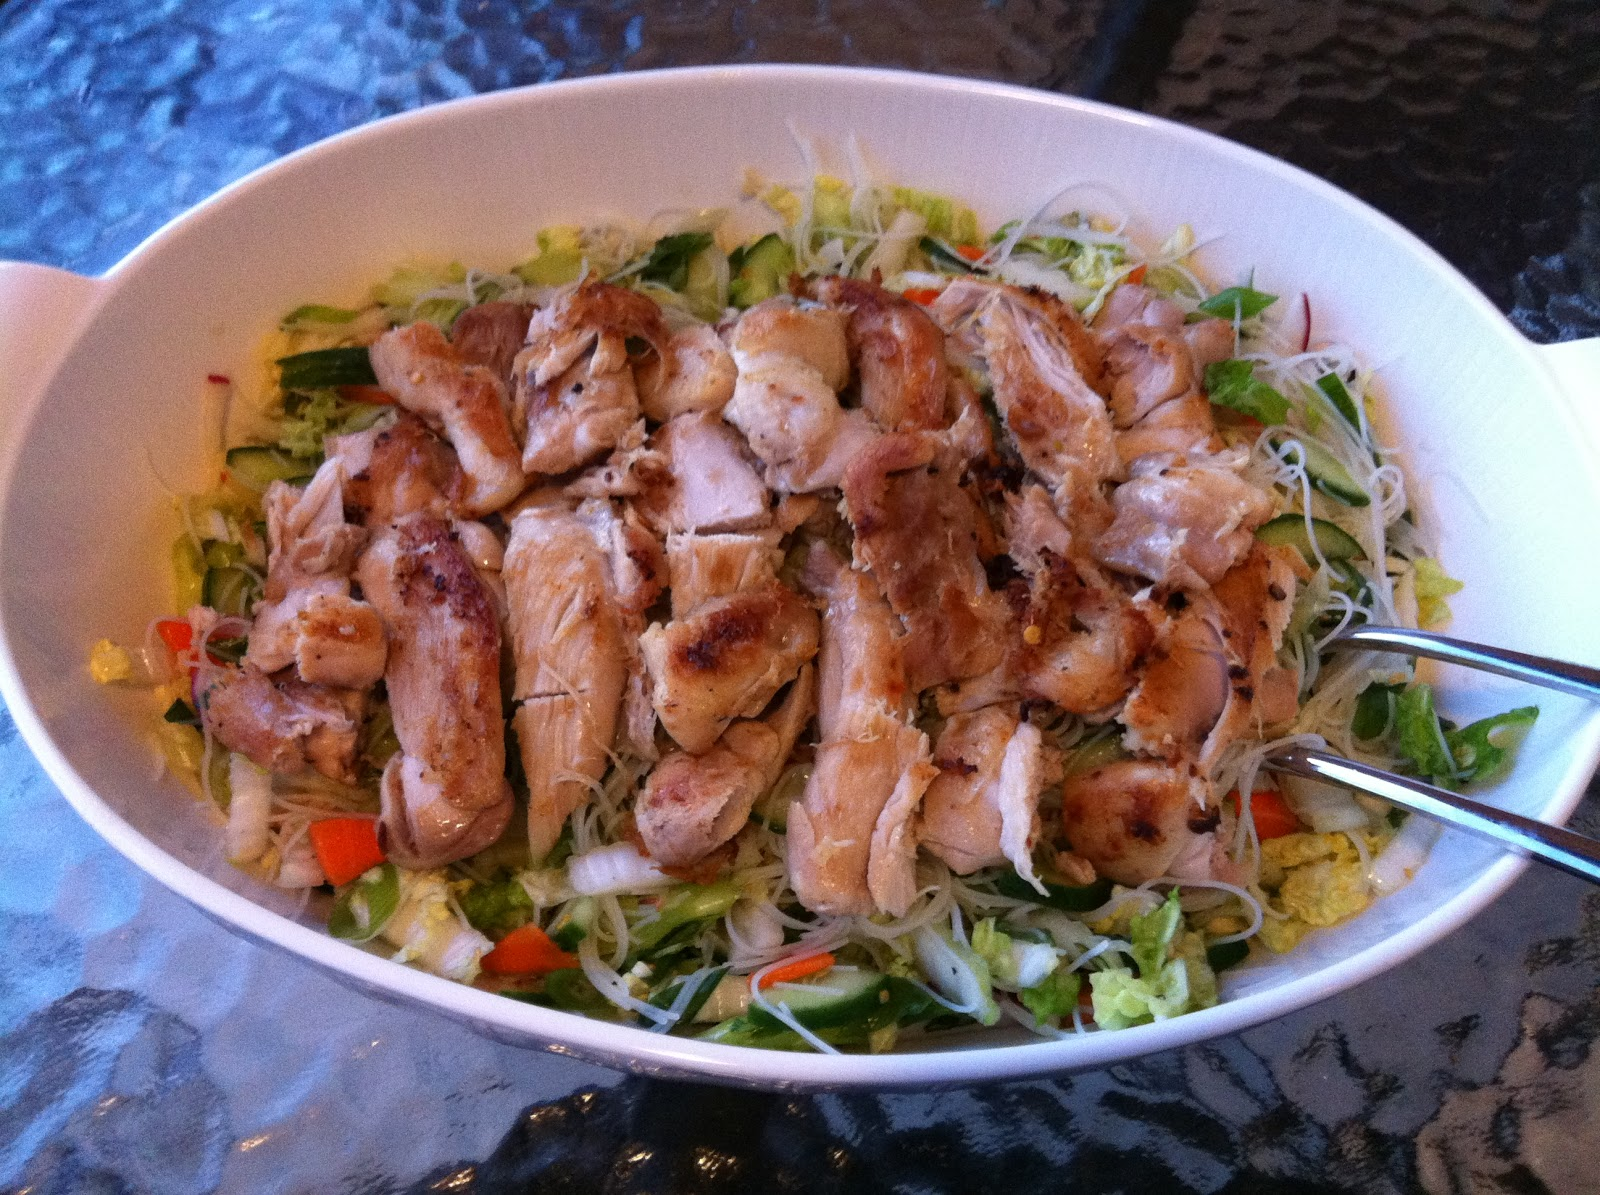 spicy marinated chicken thighs with noodle salad and fresh vegetables